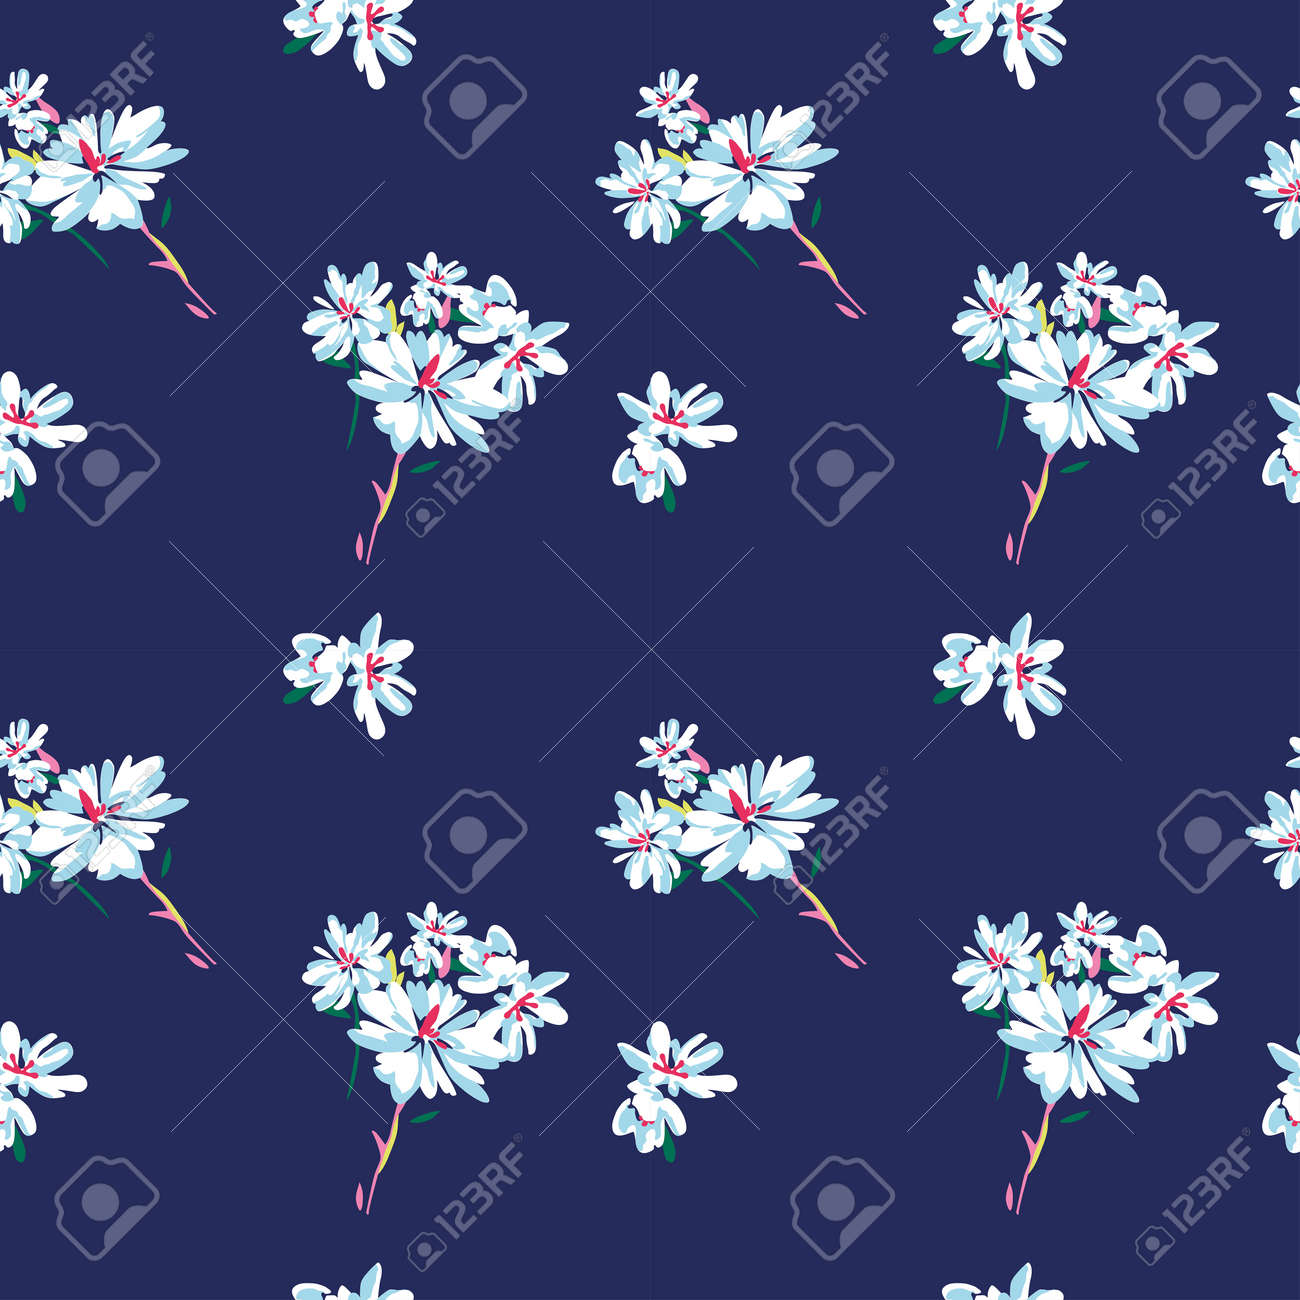 Vector seamless pattern with simple doodle flowers on dark blue background. Perfect for fabric, wrapping, wallpaper - 158589869